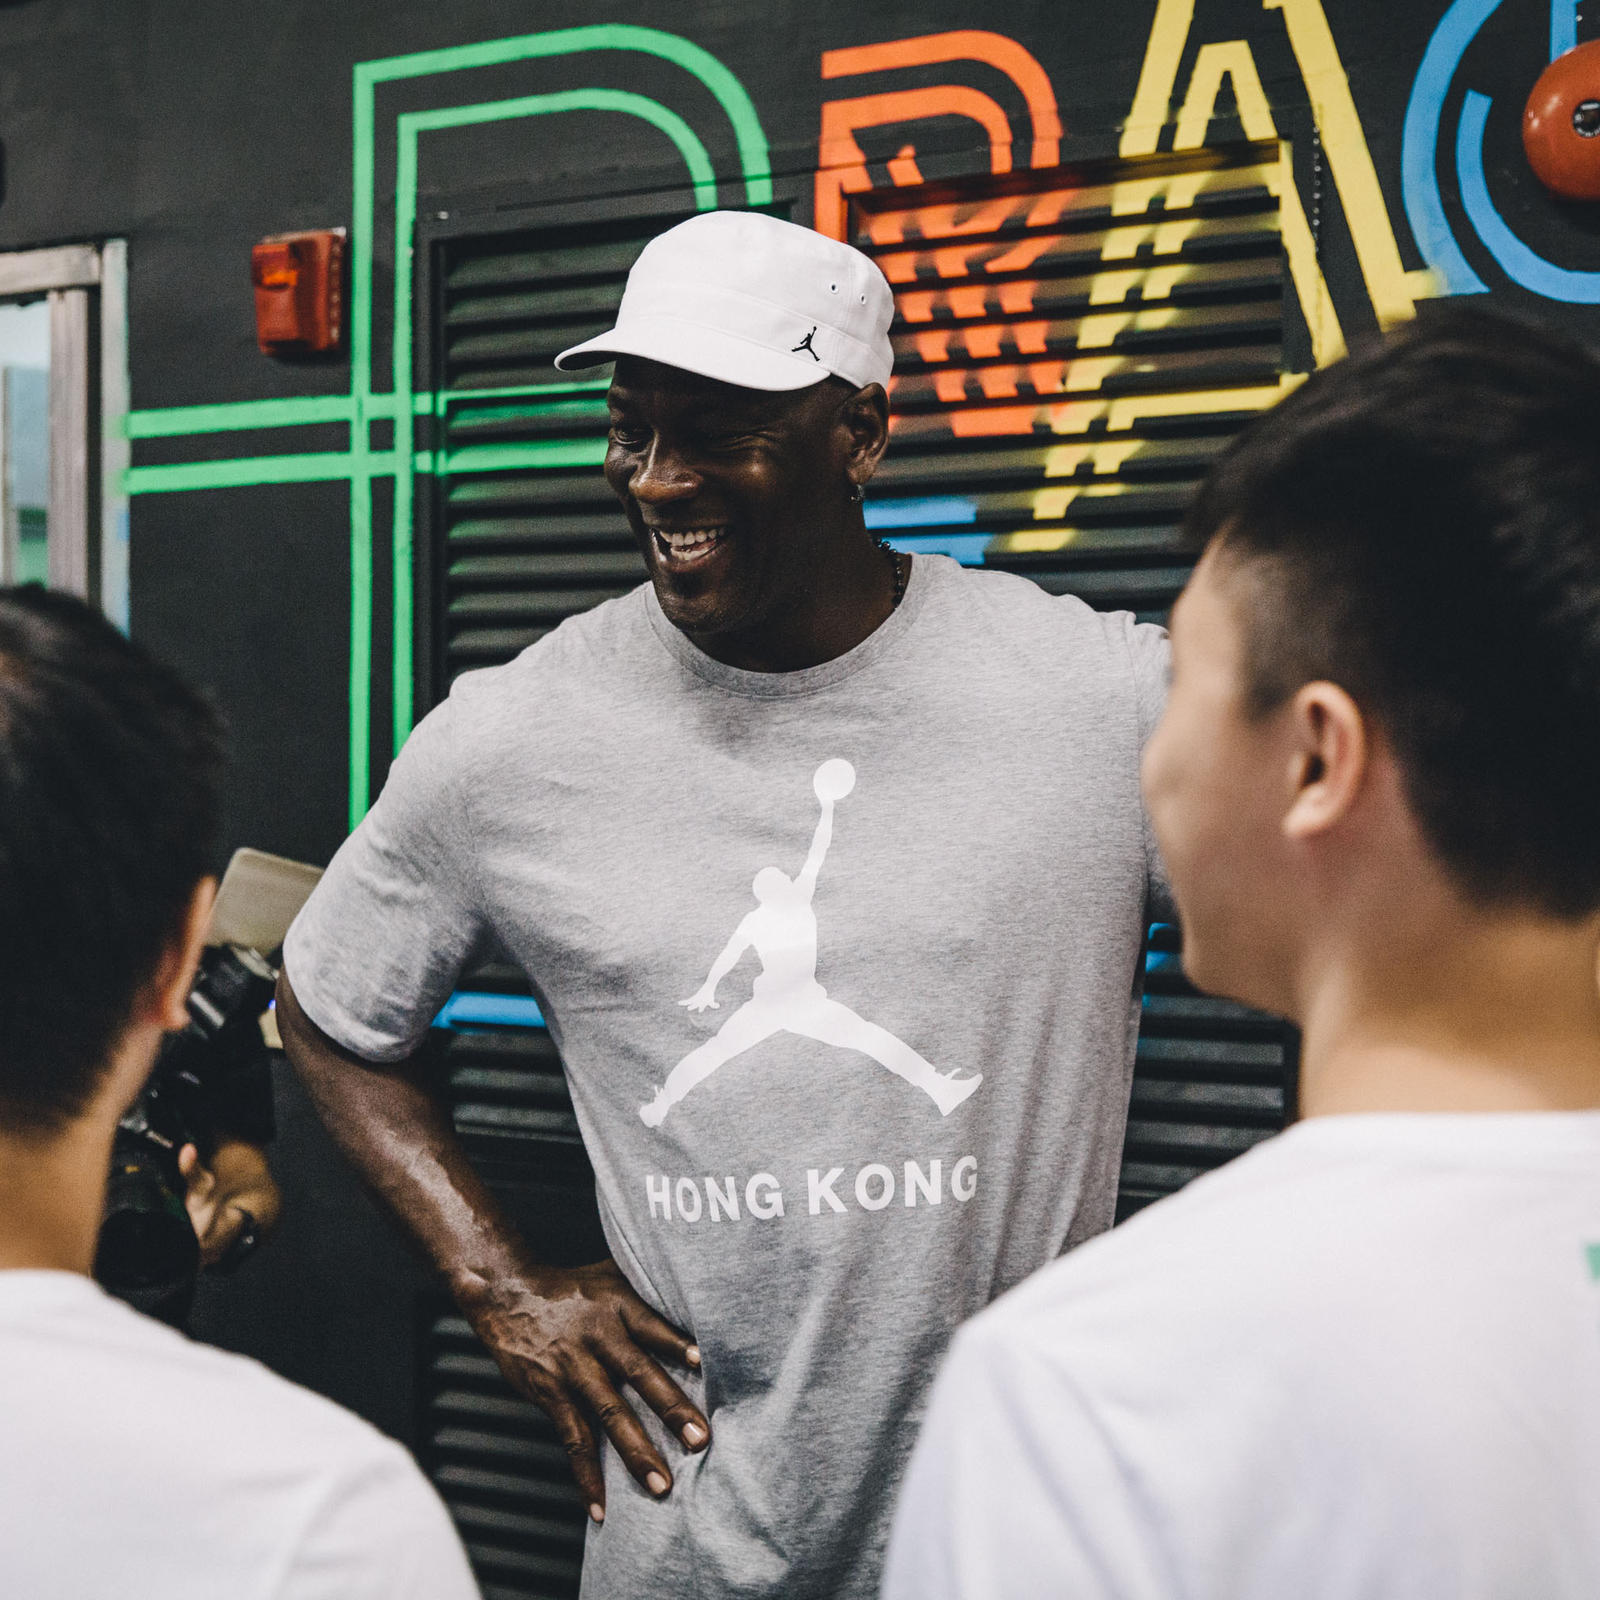 Jordan Wings Event in Hong Kong